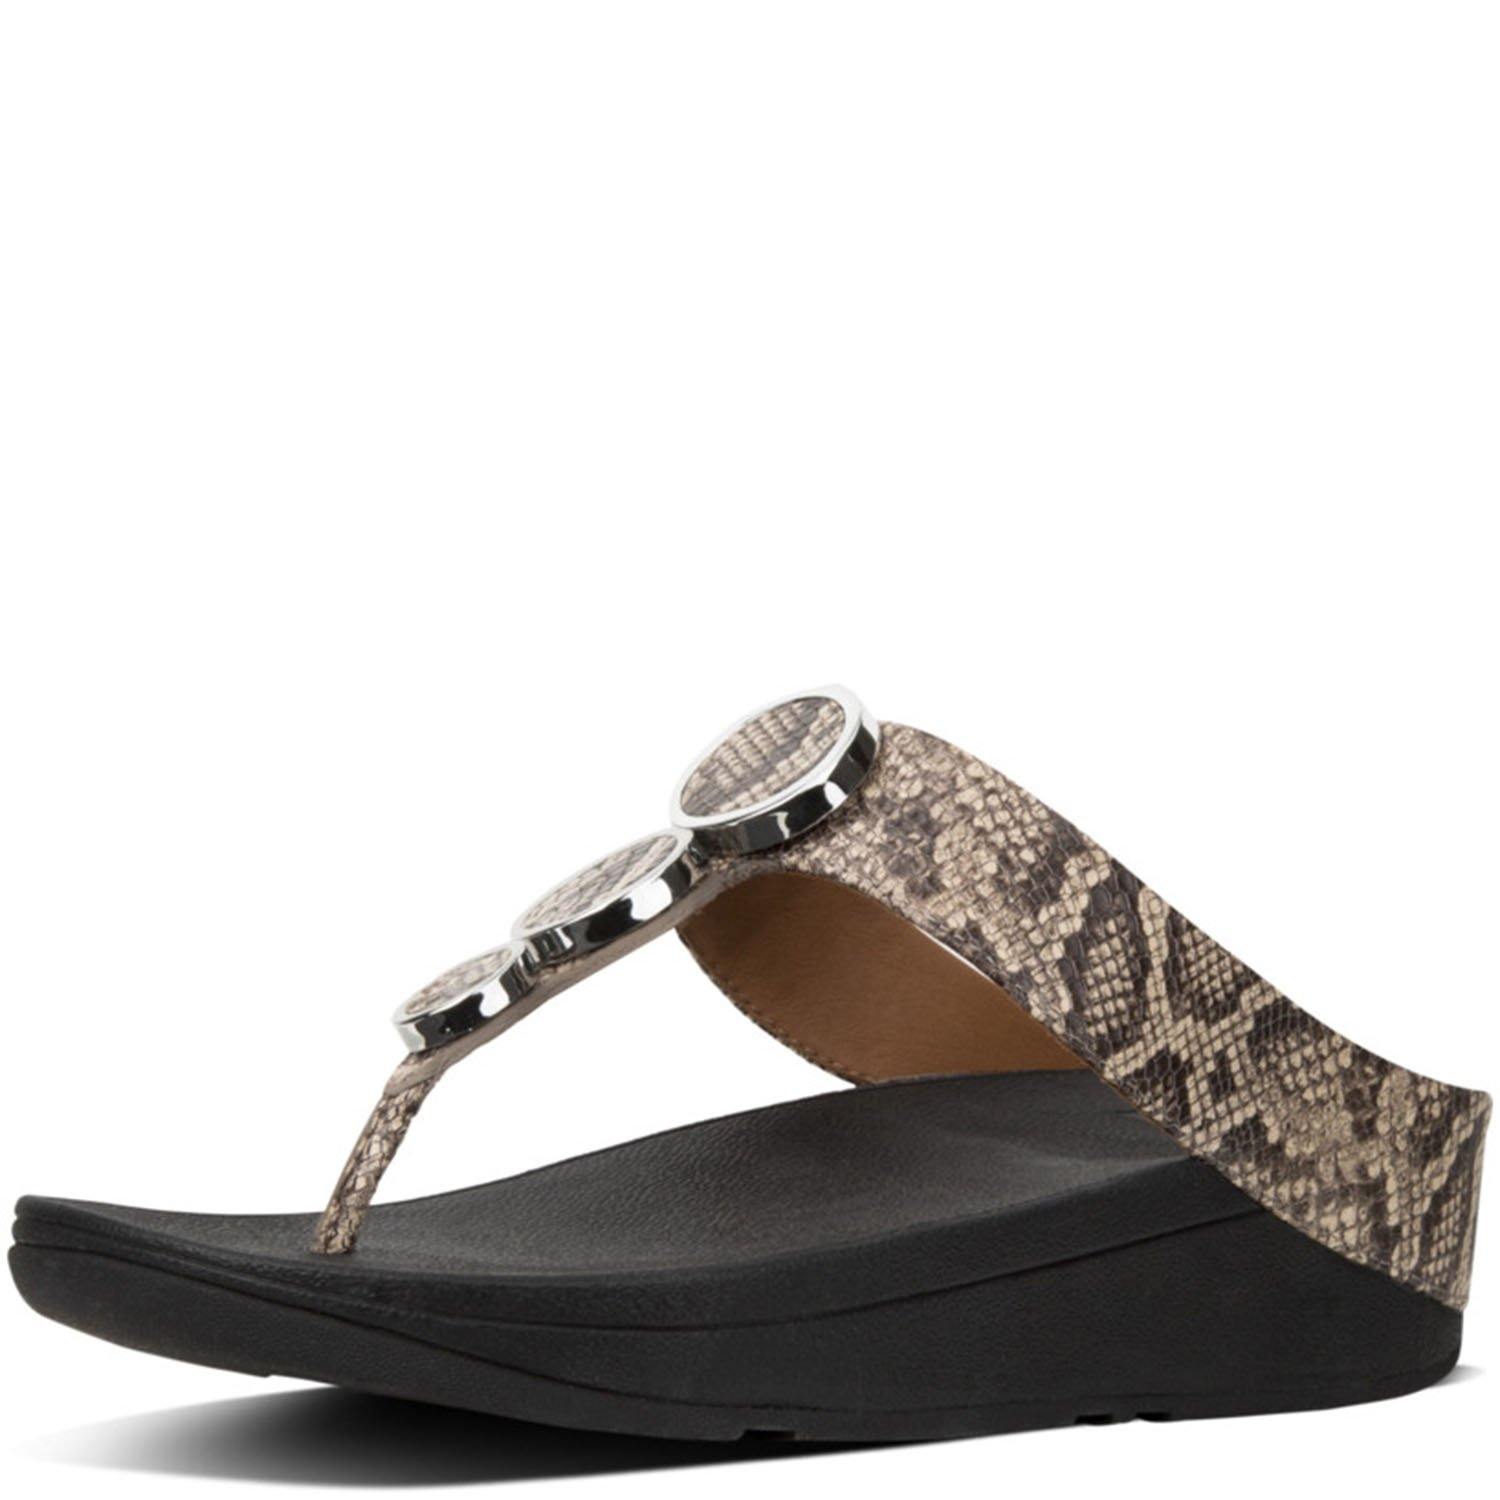 FitFlop Trade; Womens Halo Toe Thong Sandals Taupe Snake Size 7 by FitFlop